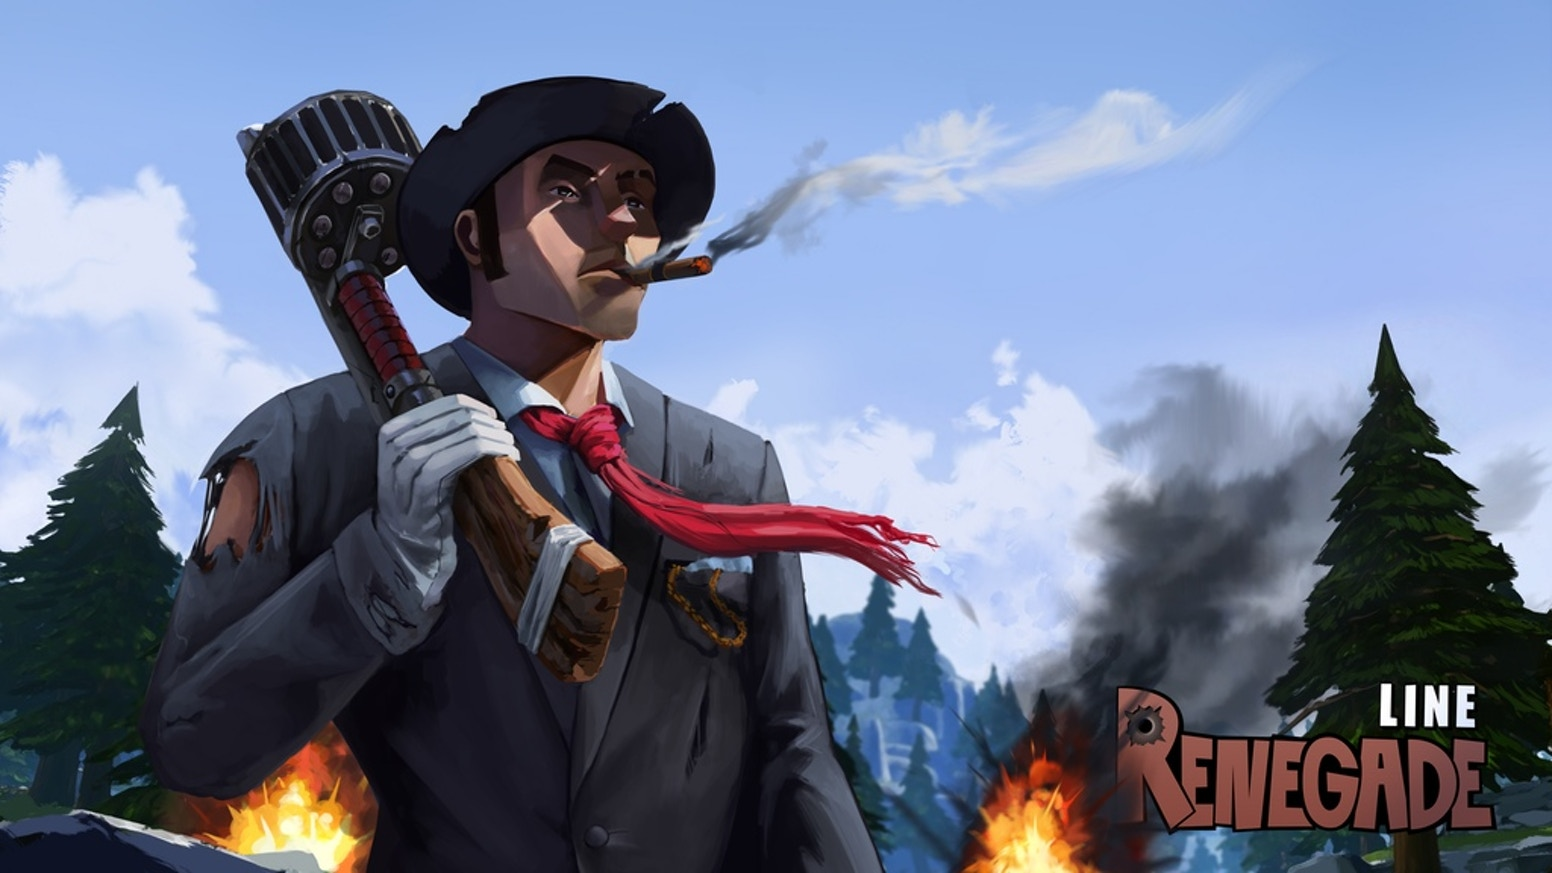 Renegade Line is a third person comic shooter featuring different classes with various abilities.